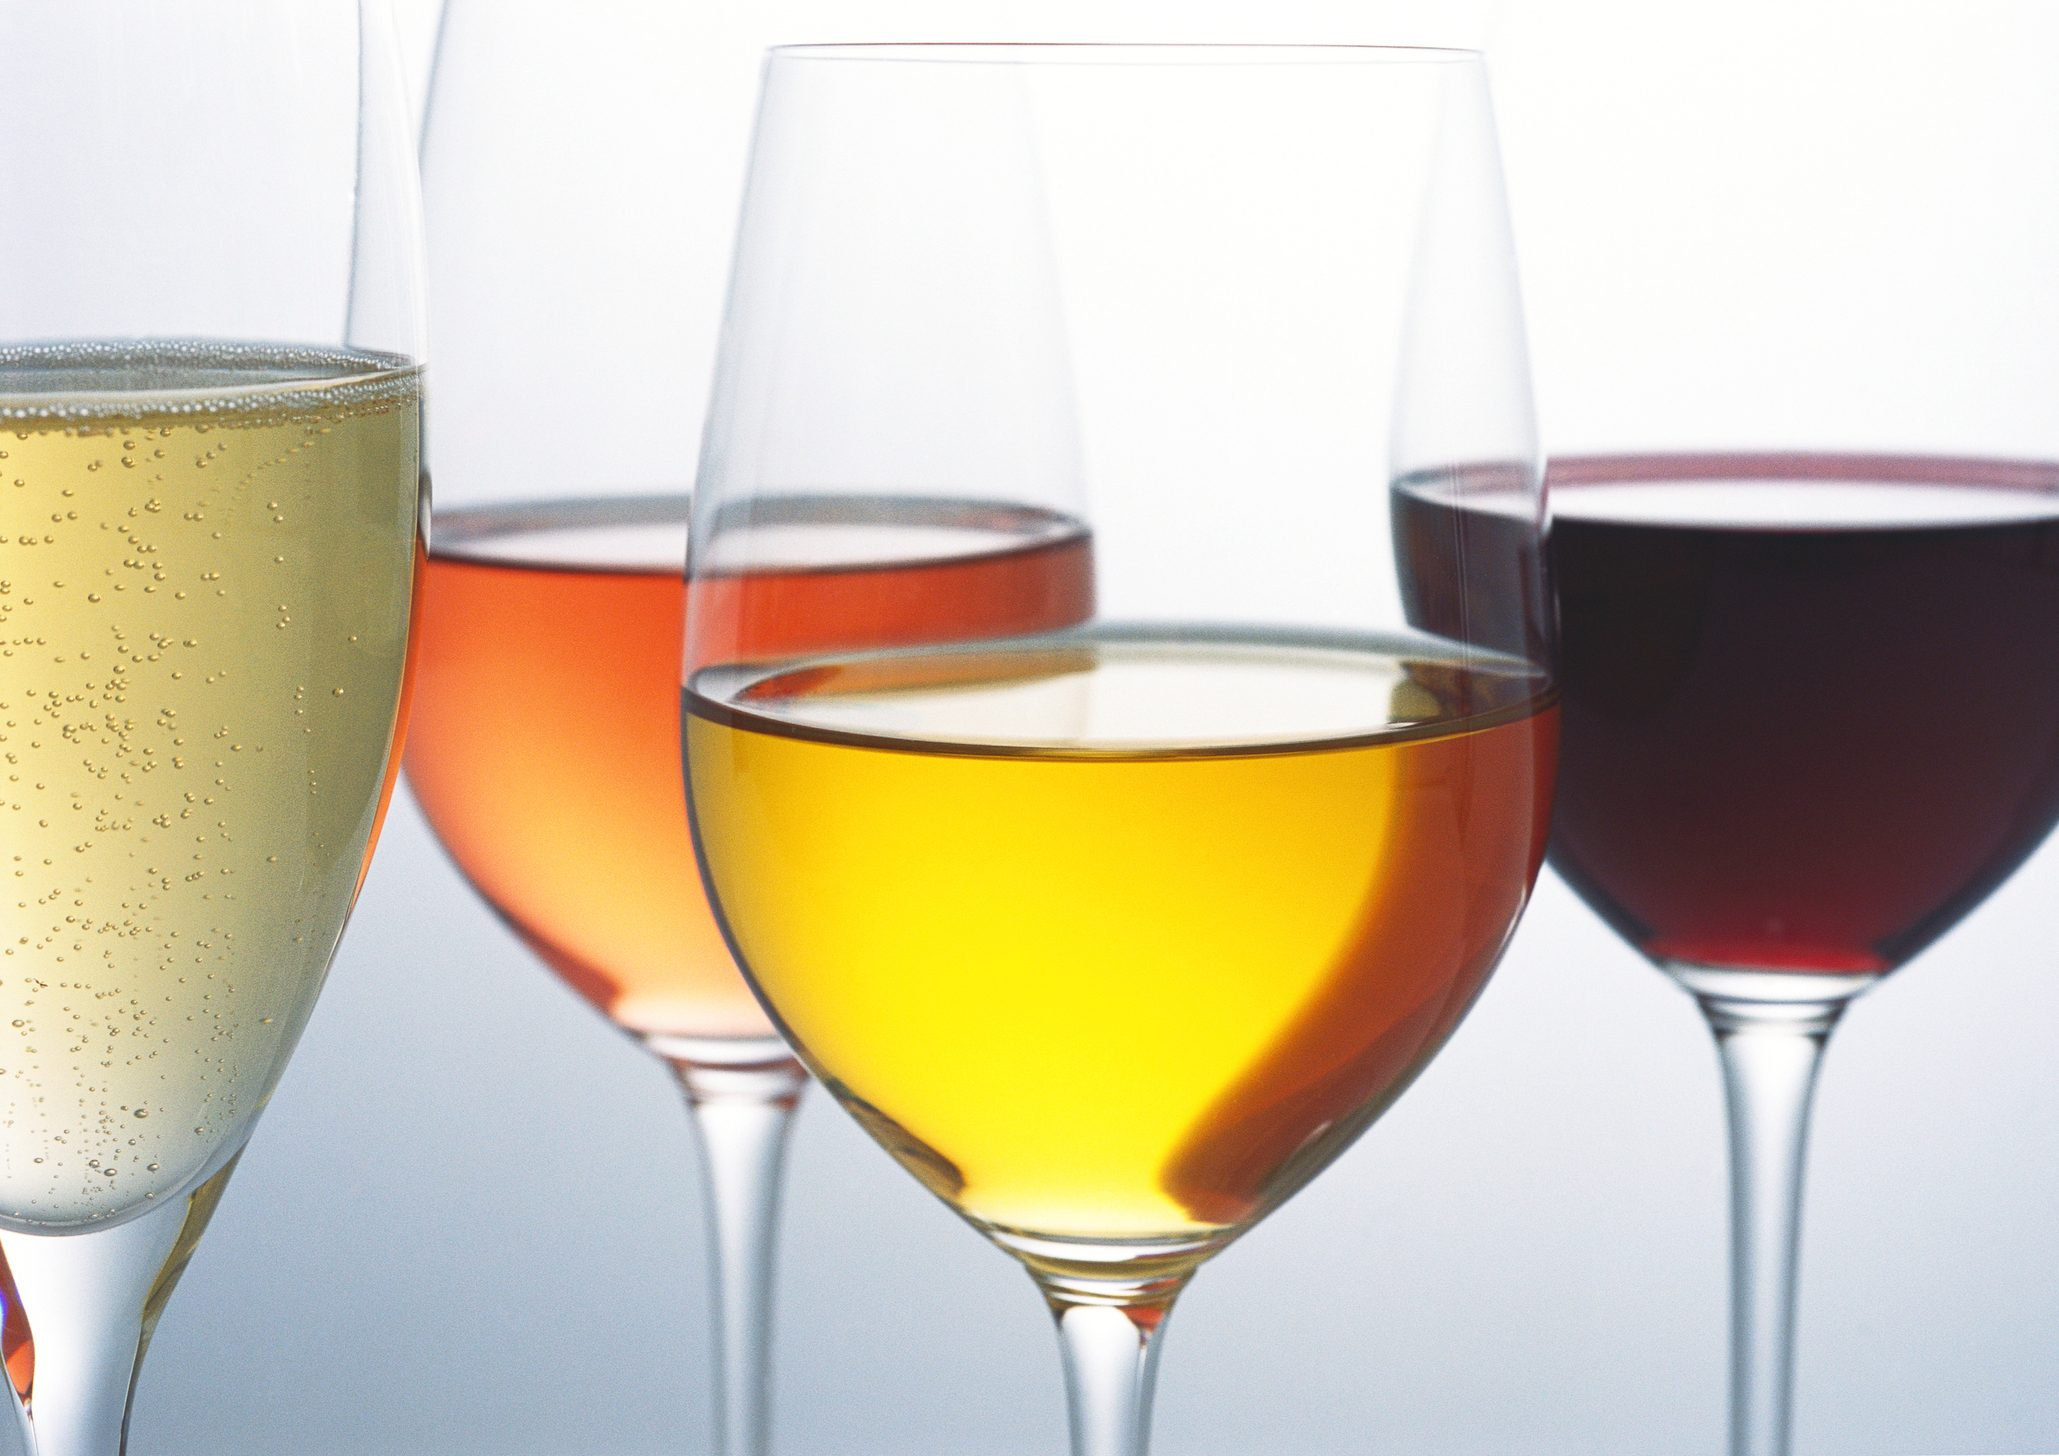 Glasses of various wines